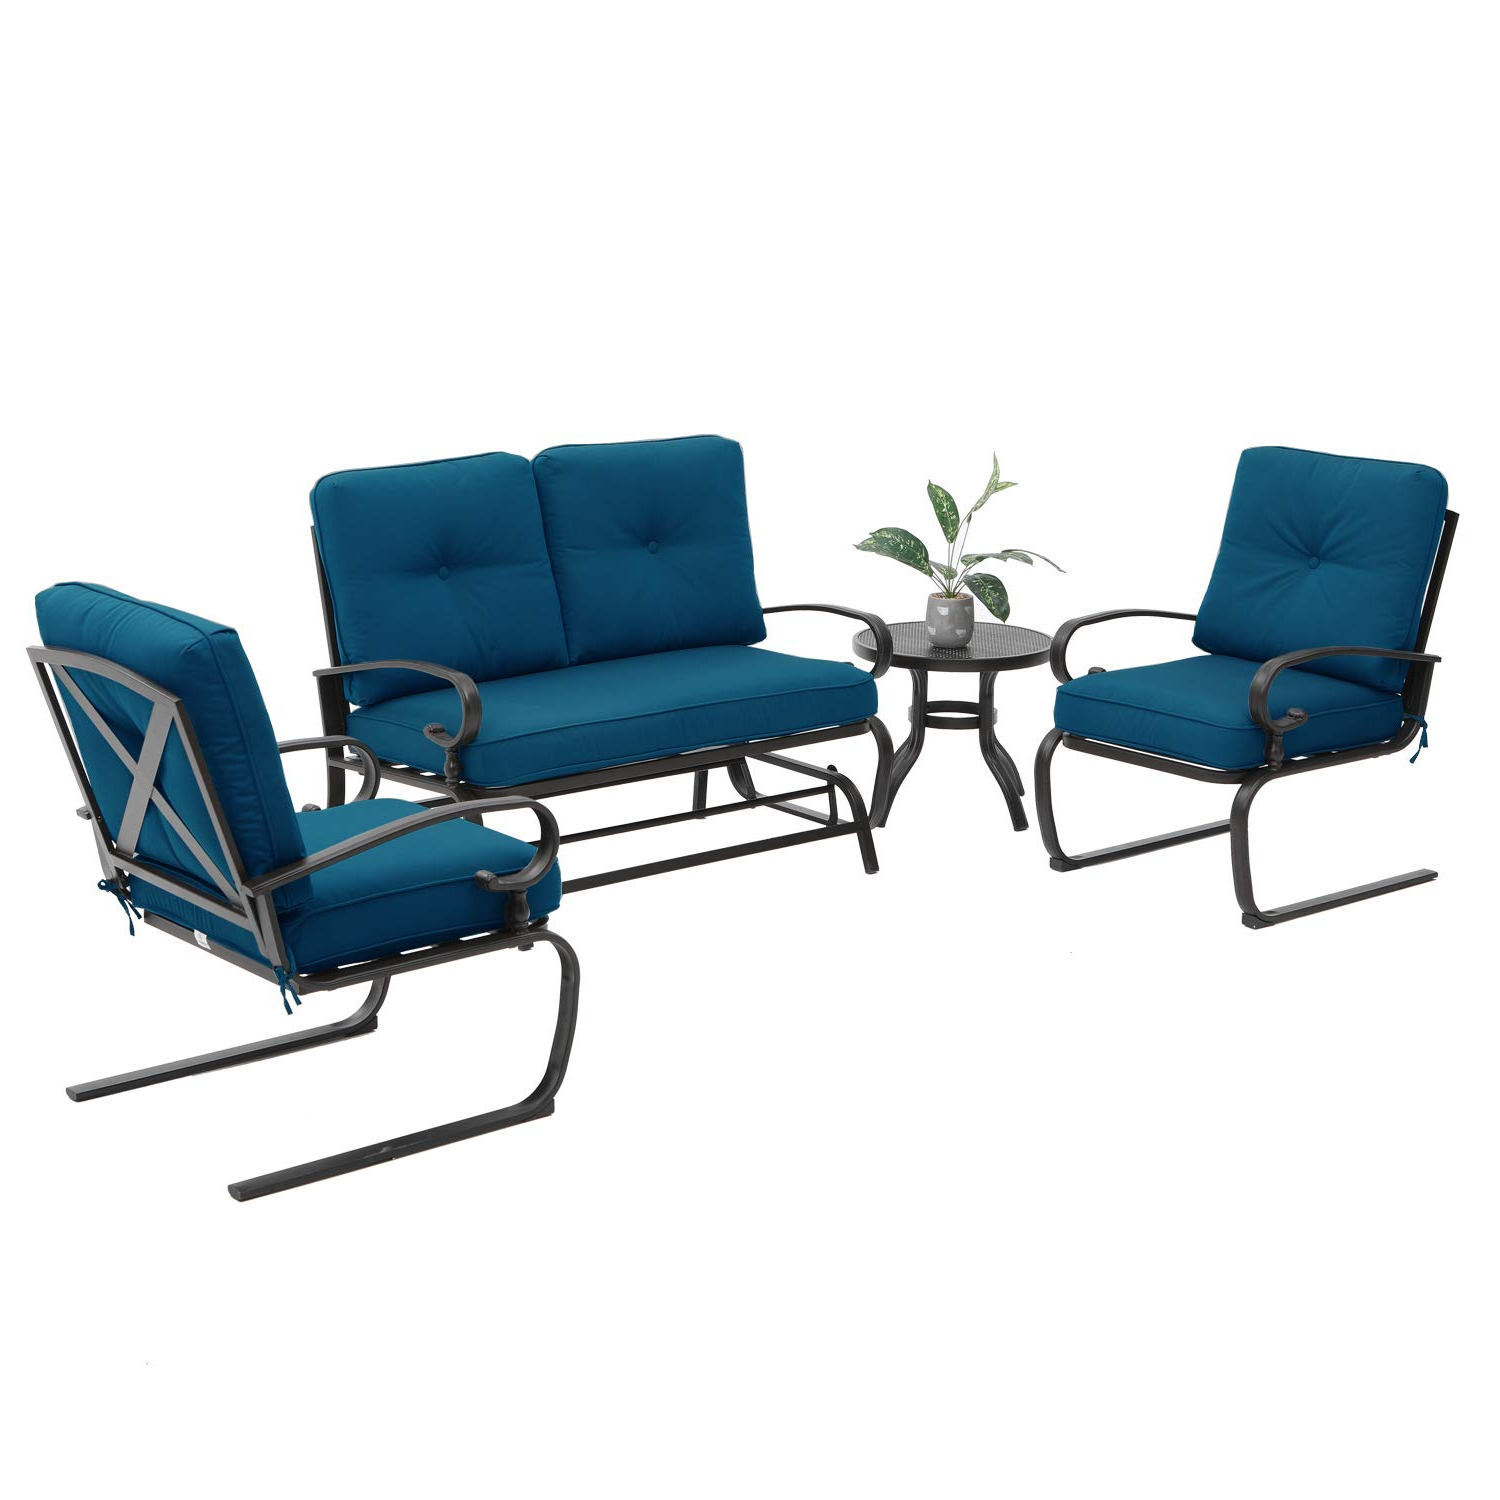 Famous Outdoor Patio Swing Glider Bench Chair S With Loveseat, Bistro Table, 2 Spring Chair Swing Glider Rocking (View 28 of 30)